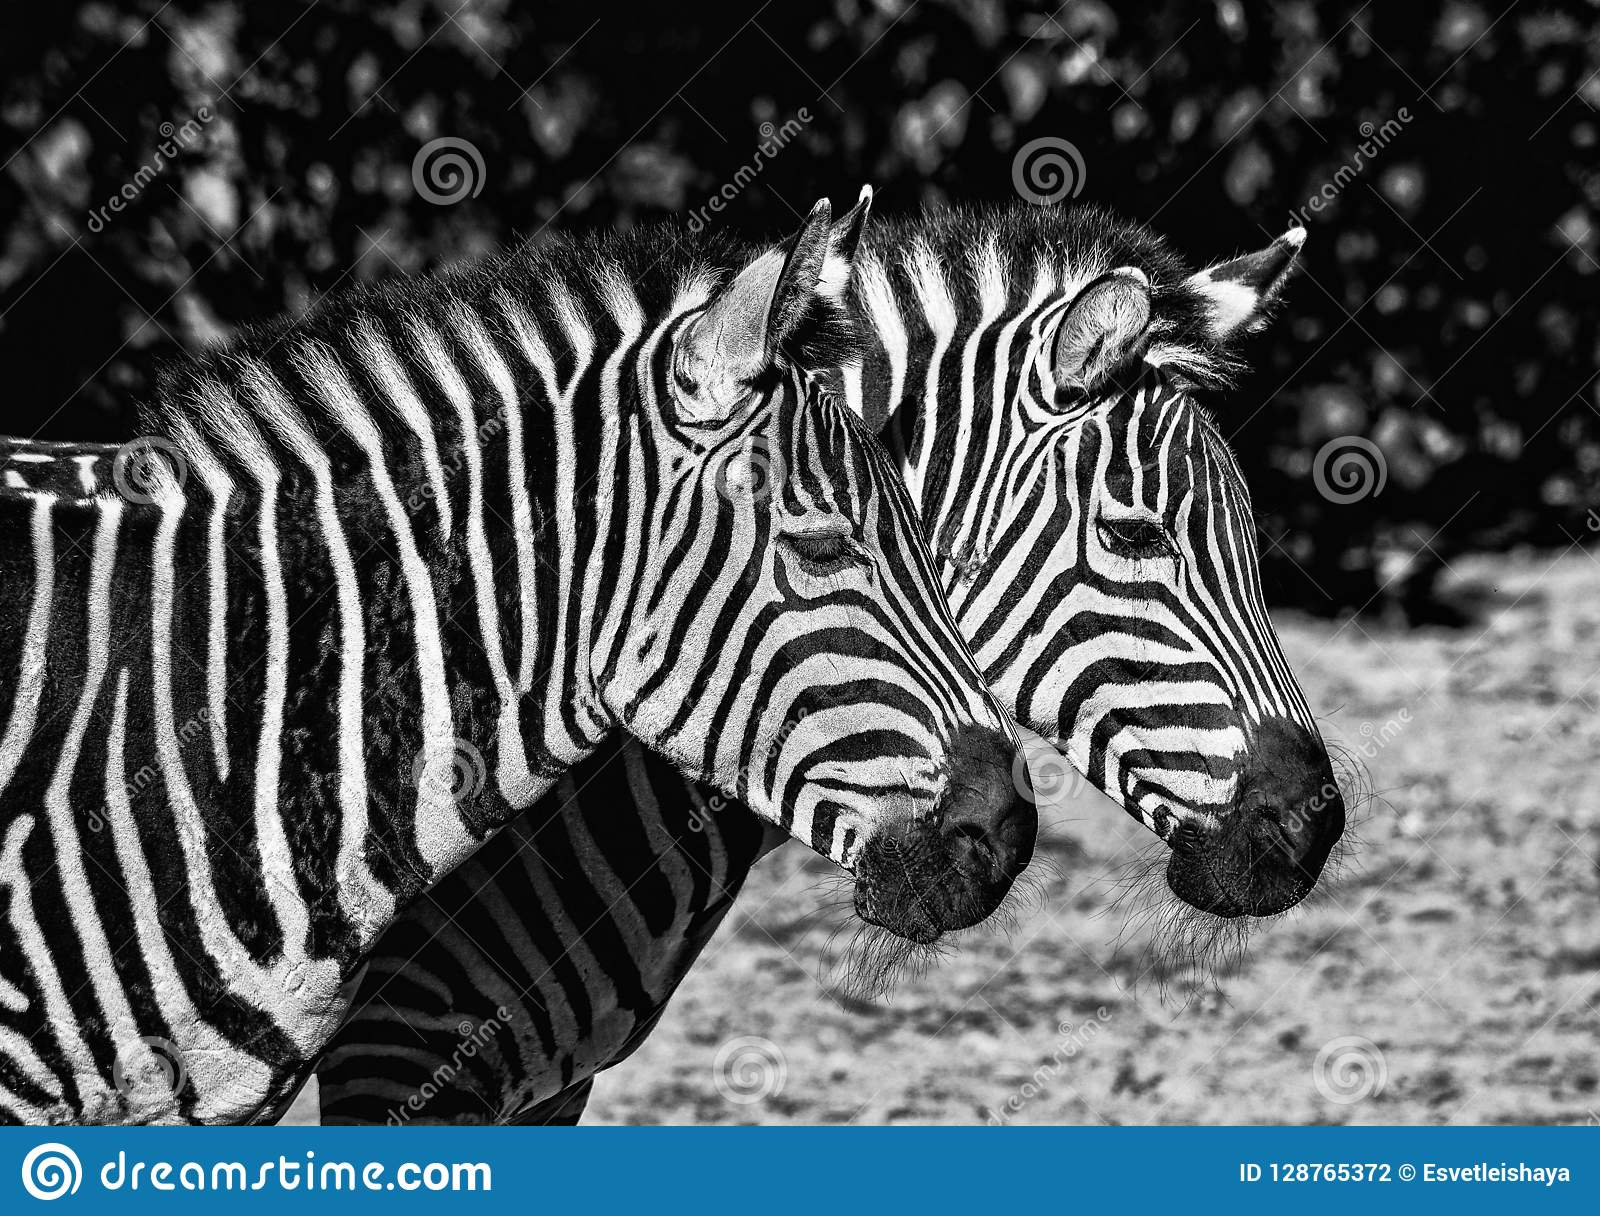 Two young zebras in the zoo safari animals zebras portrait close up black and white